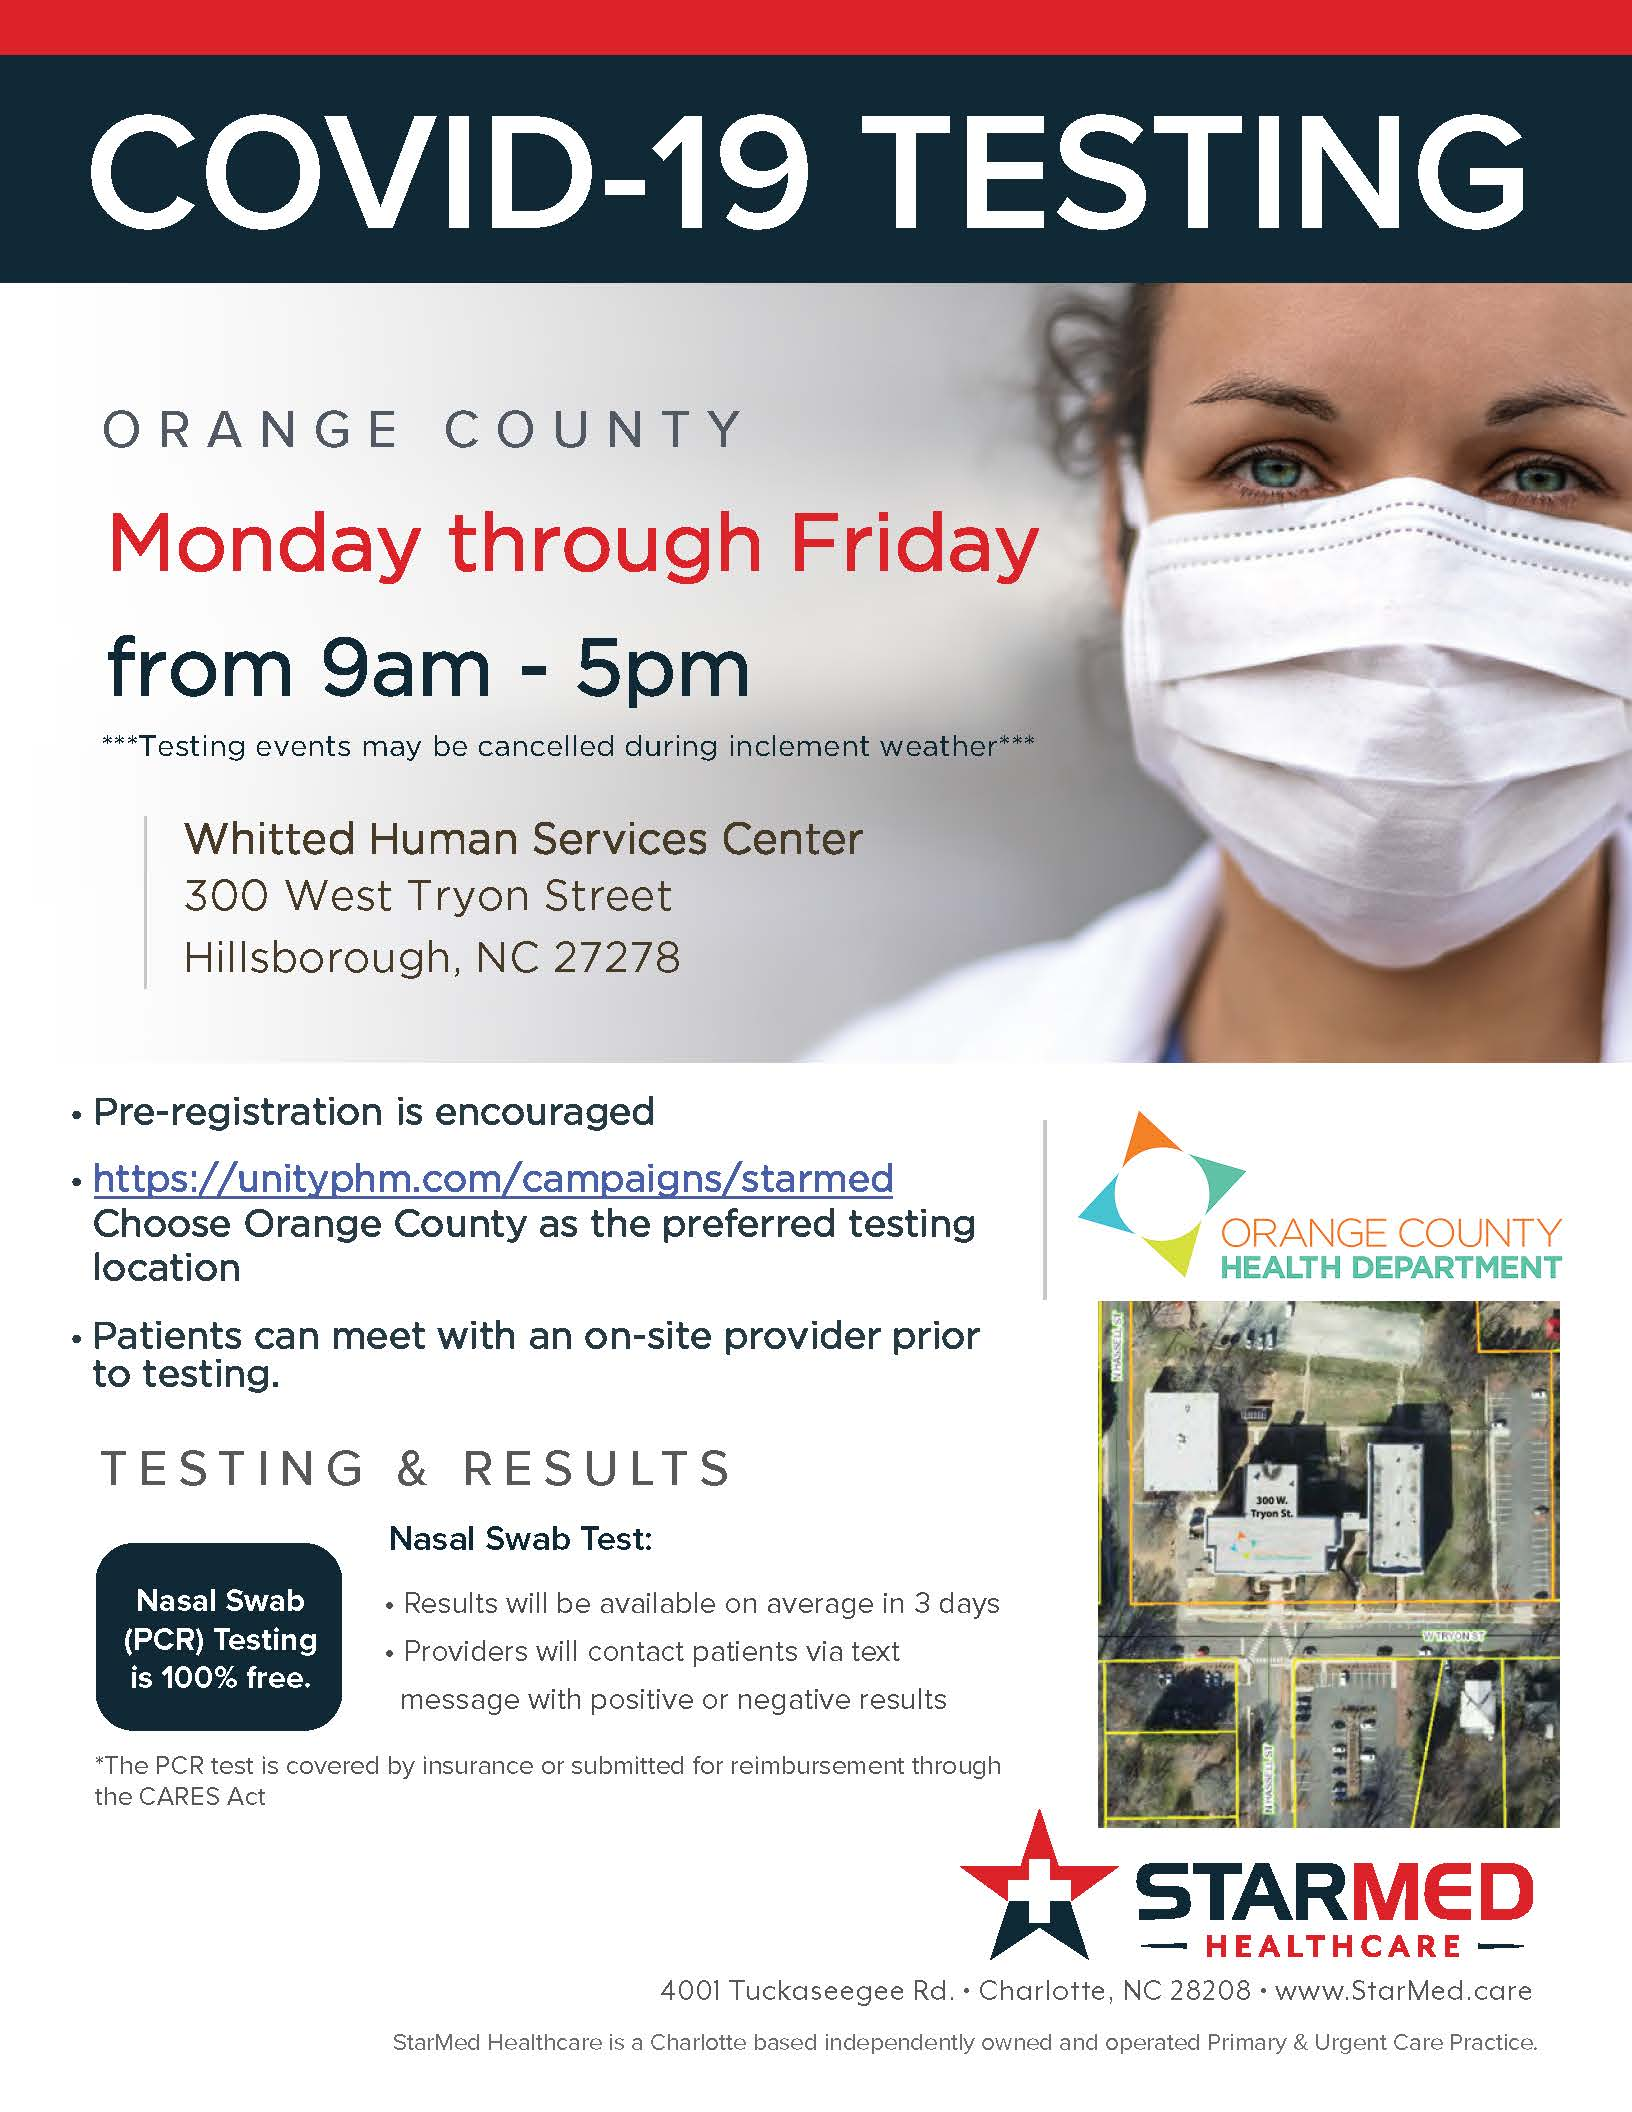 SM_Covid19Flyer_OrangeCountyHD_WeekdayTesting1_ENGLISH Opens in new window